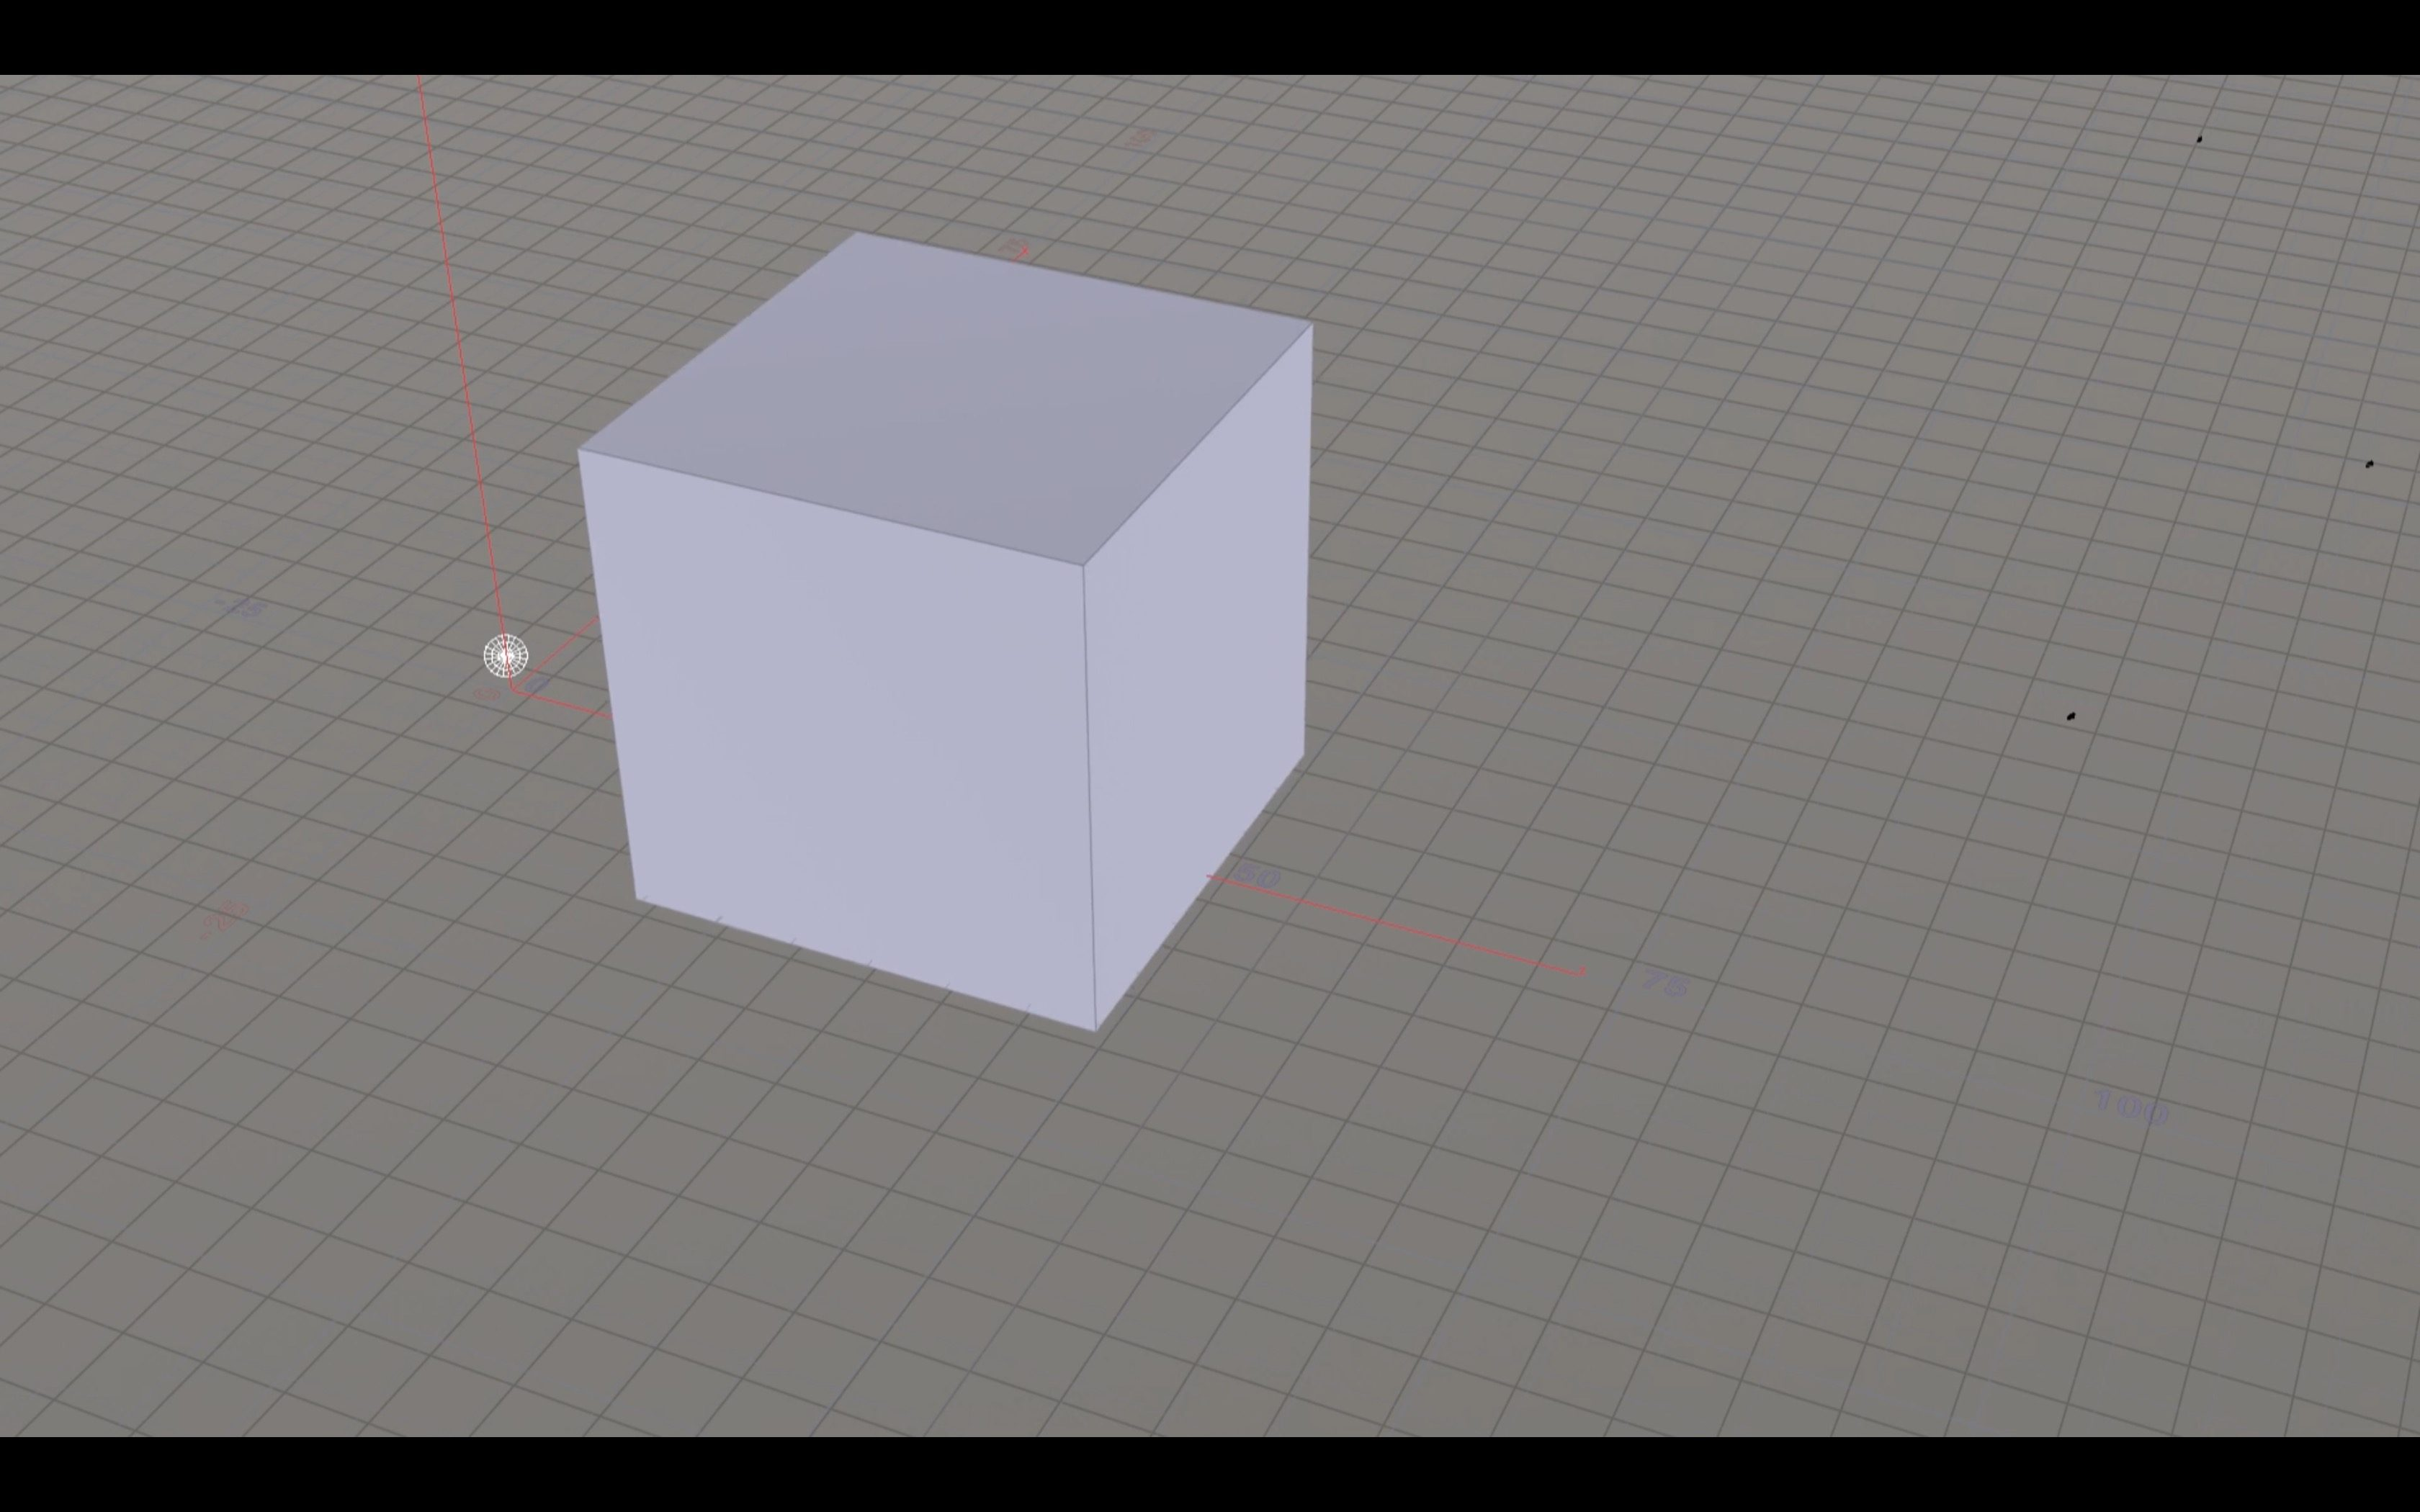 Tutorial: How to animate a cube in Houdini